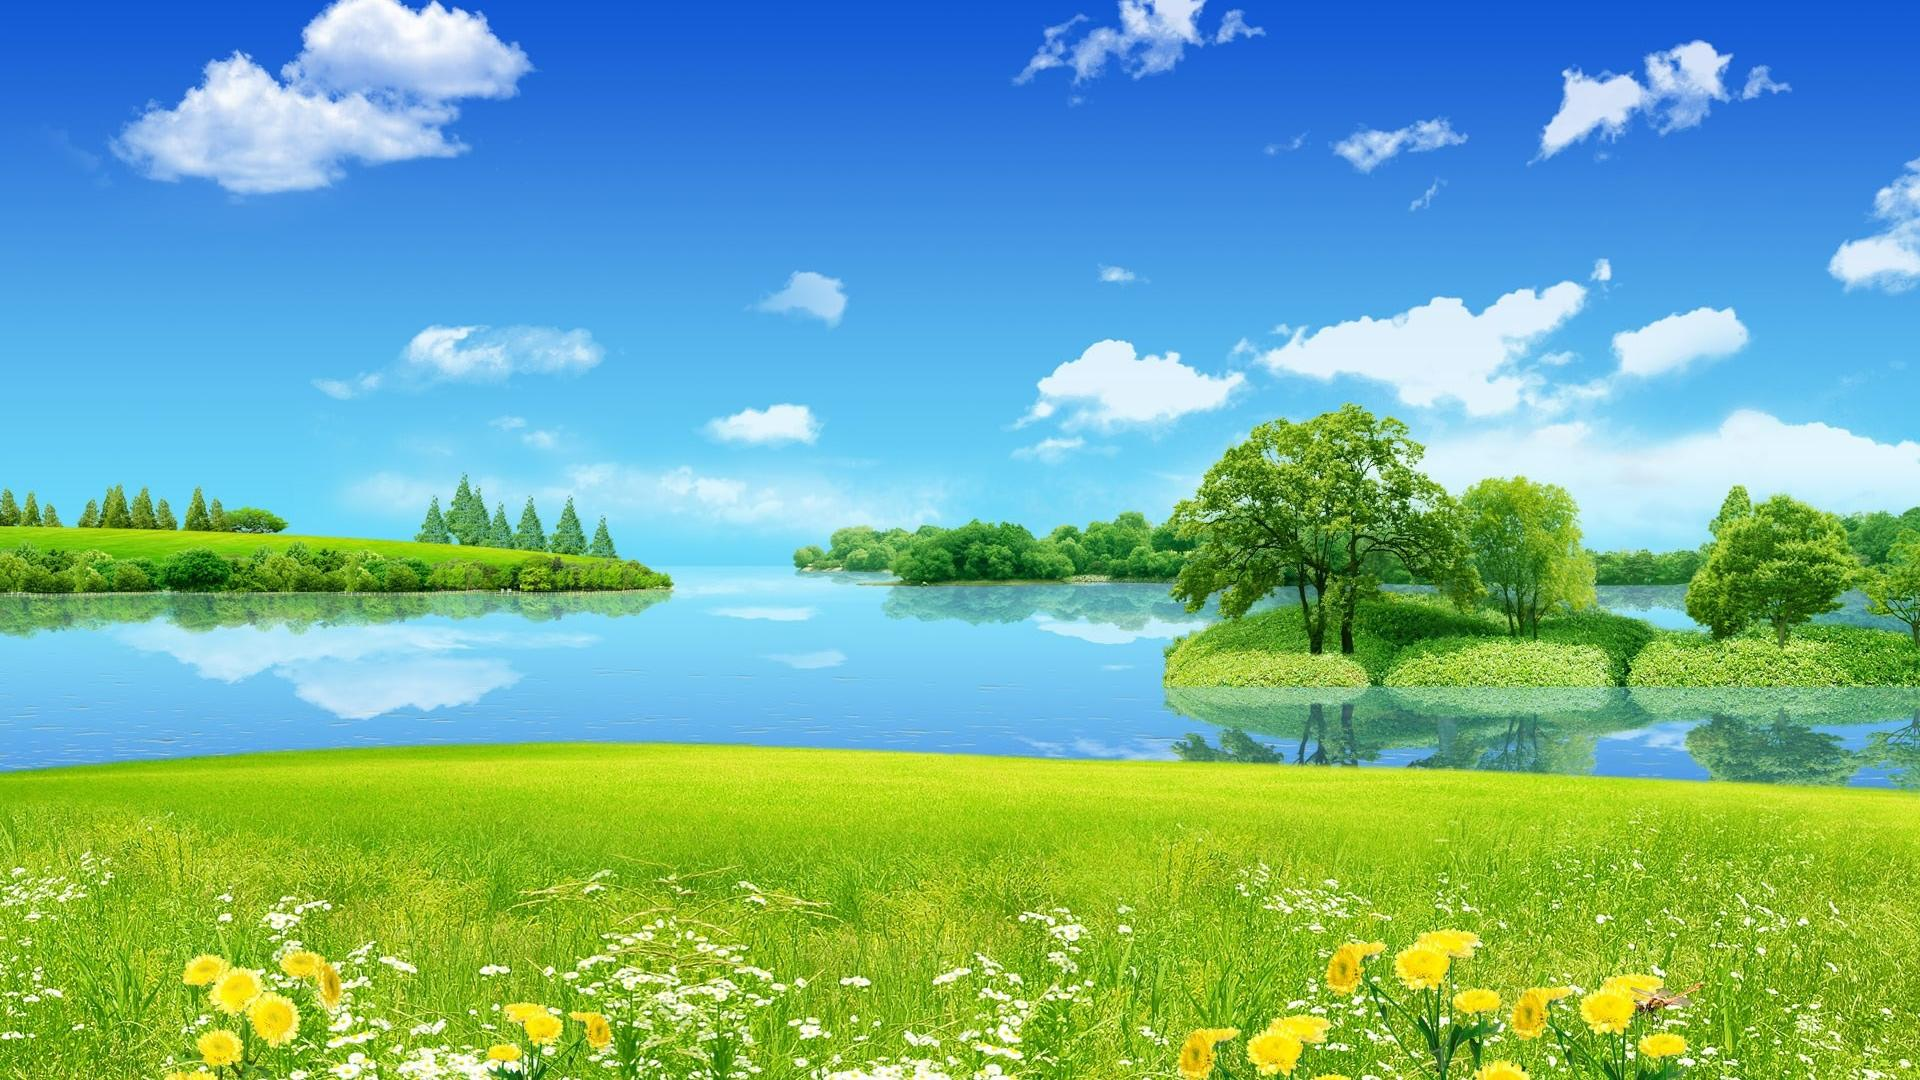 HD Wallpapers 1080p Nature Animated